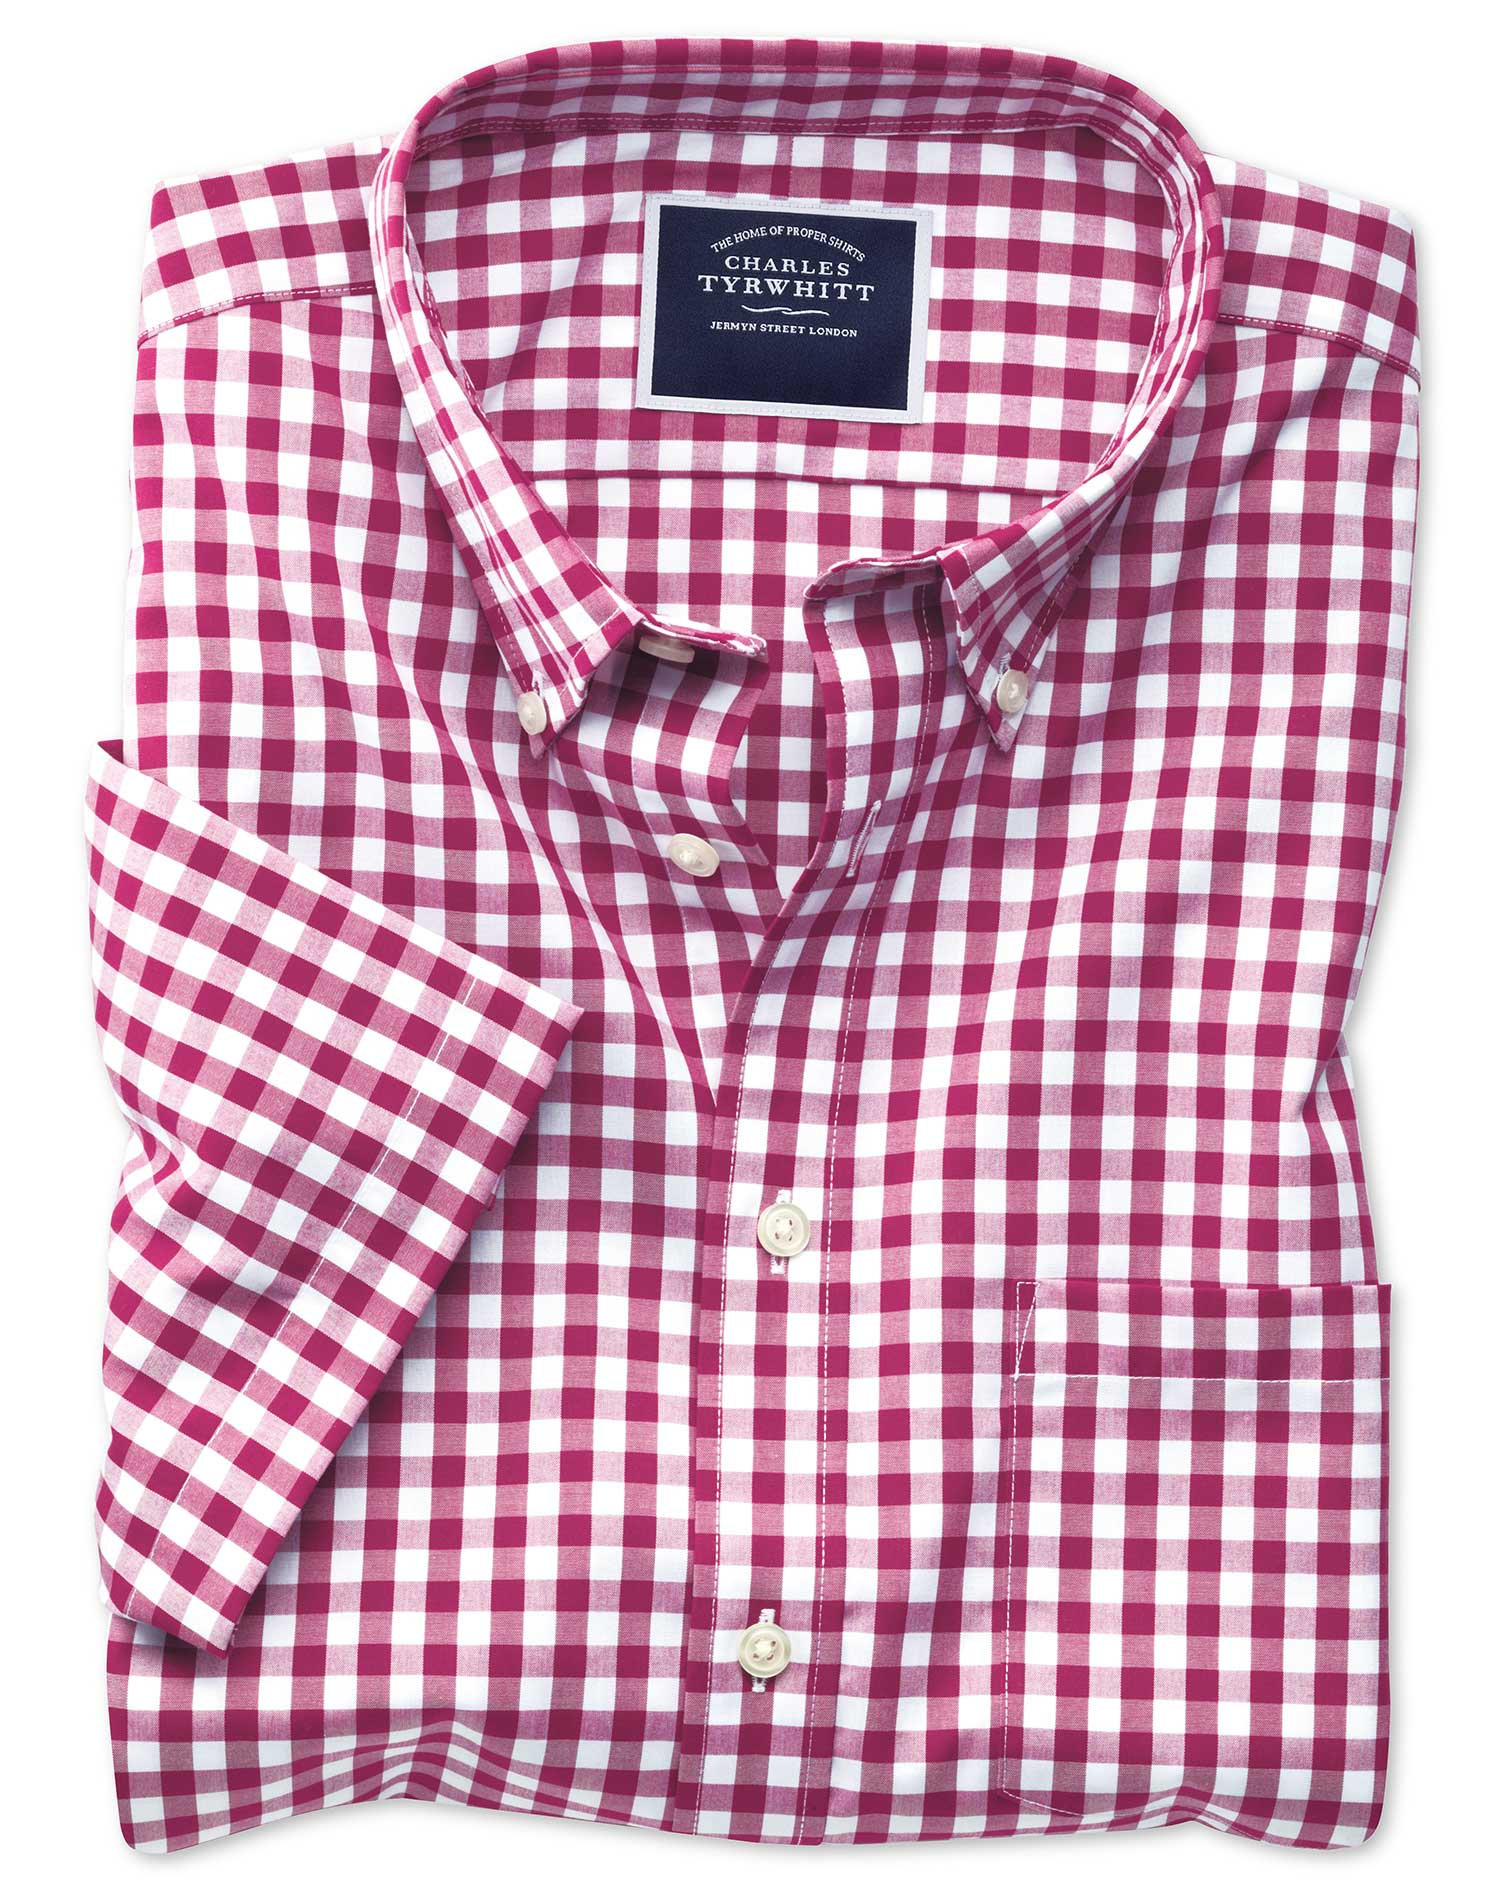 Slim Fit Button-Down Non-Iron Poplin Short Sleeve Red Gingham Cotton Shirt Single Cuff Size XXL by C